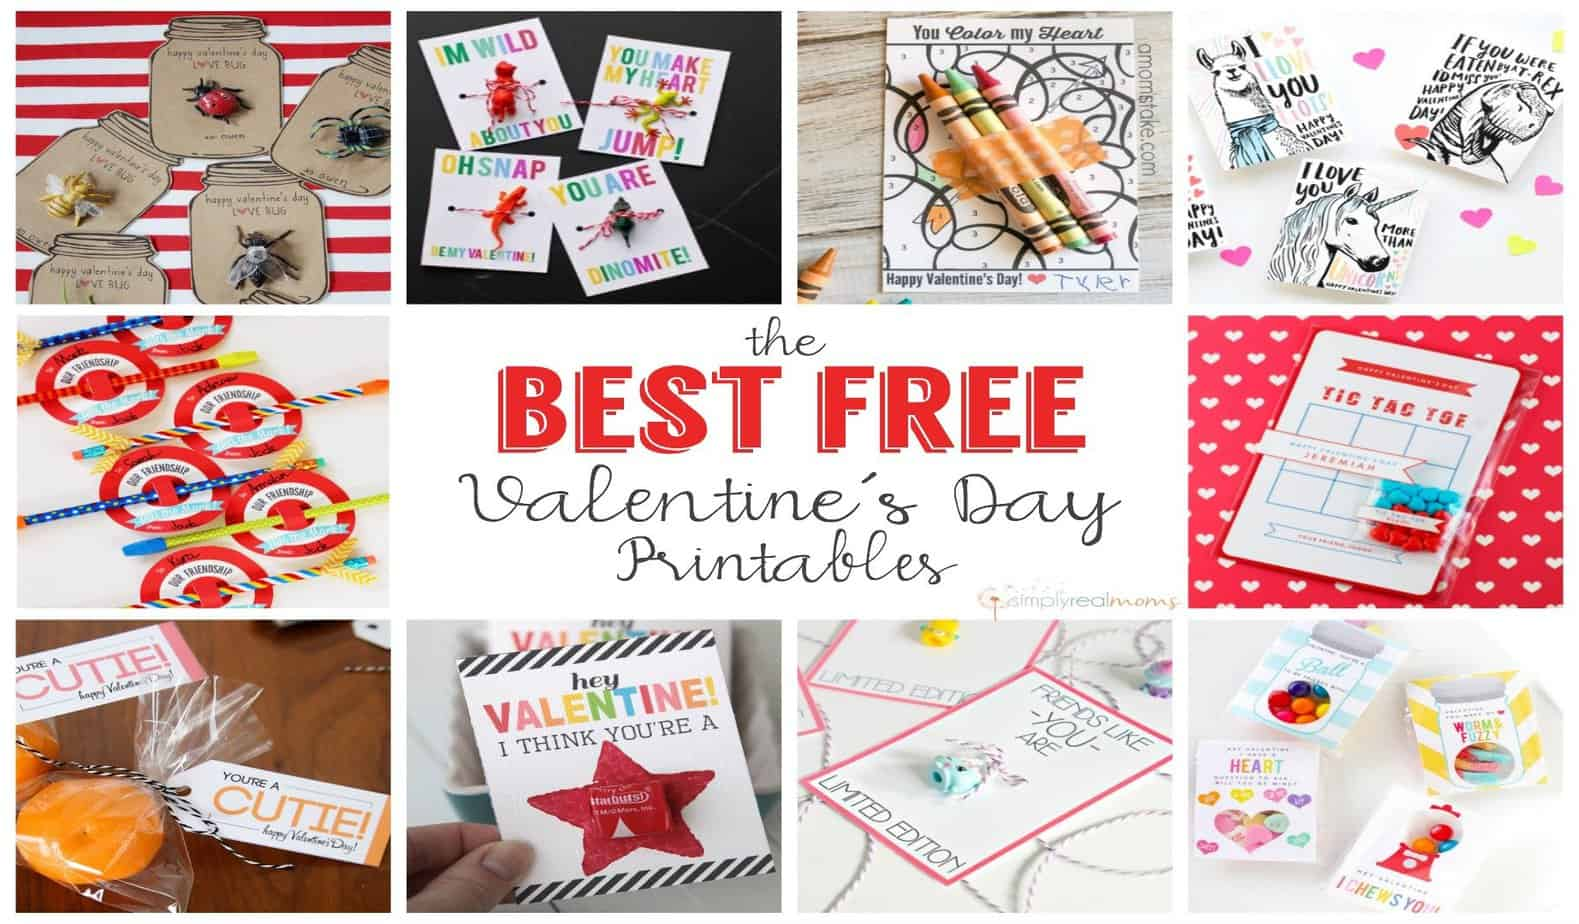 The Best Free Valentines Printables 11